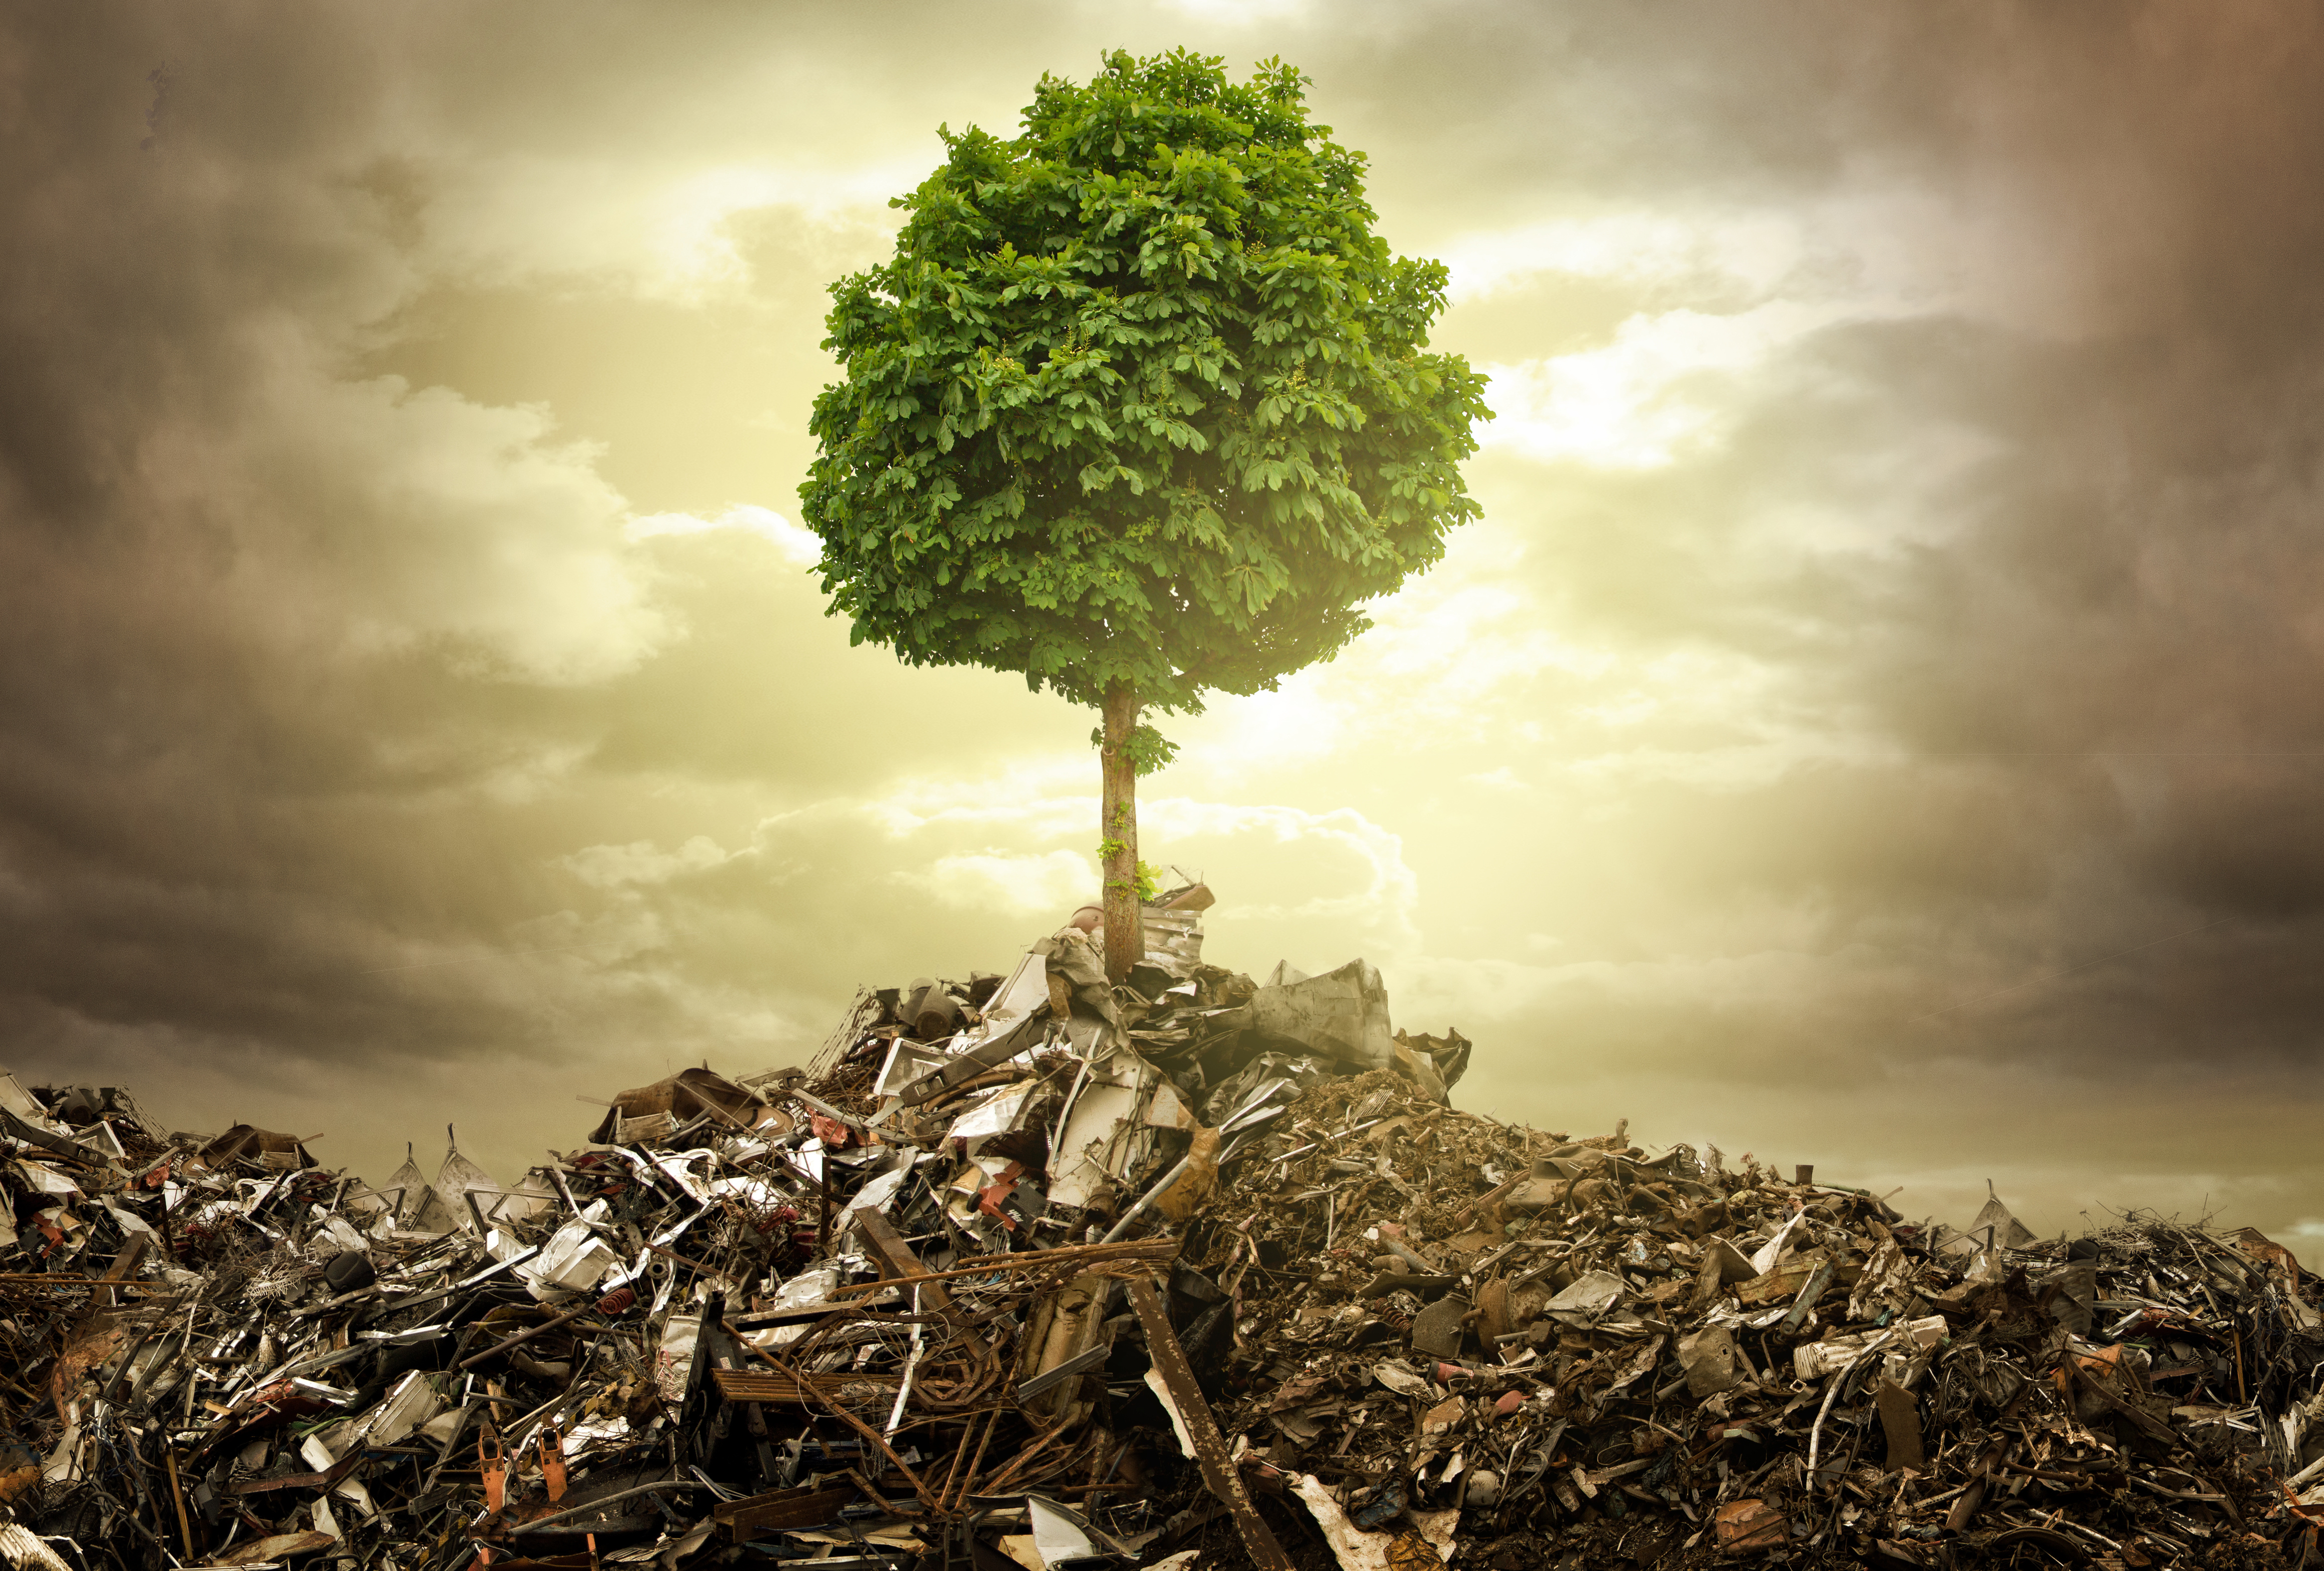 Be Kind To The Planet: Recycle, Reuse and Reduce